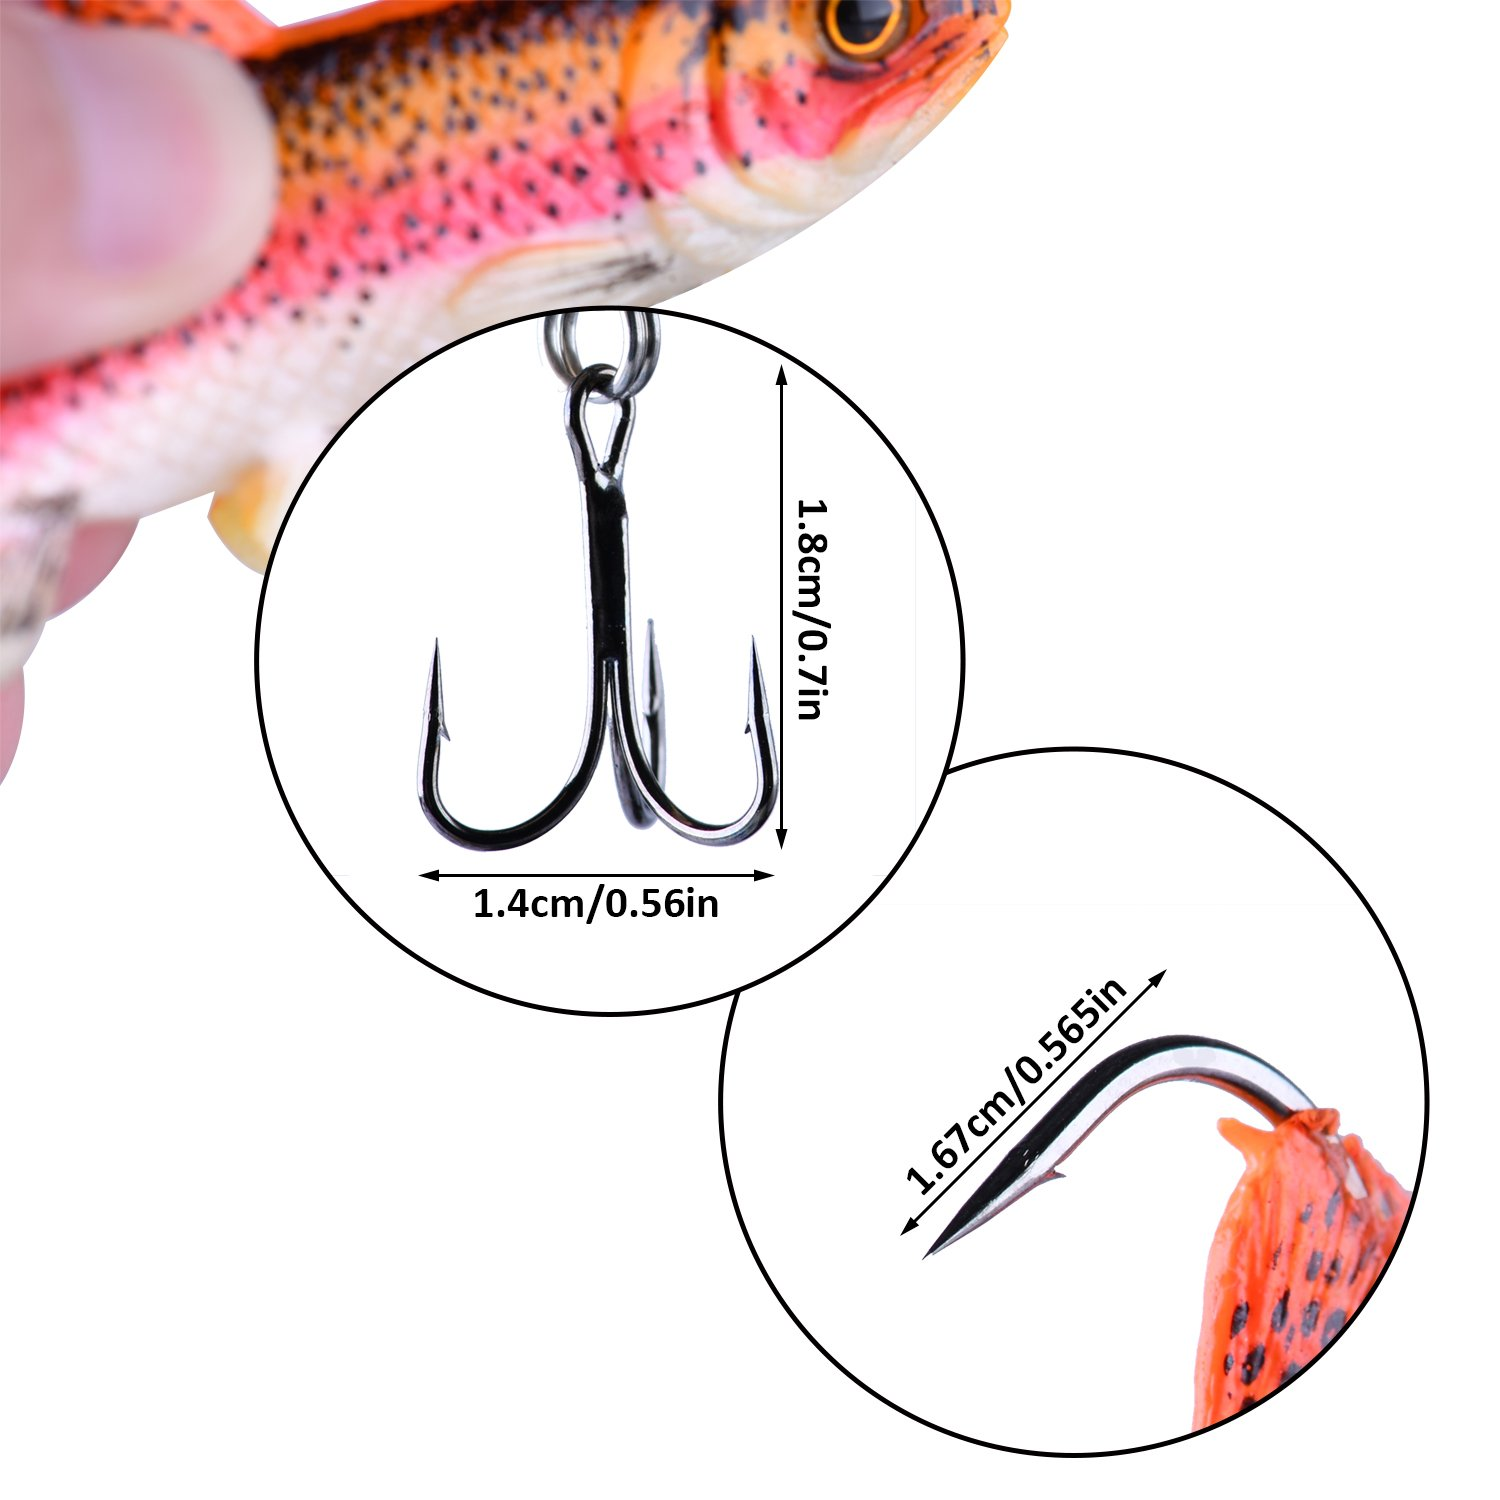 Goture Agiler Lead Jigs Soft Fishing Lures with Hook Sinking Swimbaits for Saltwater and Freshwater 5 Colors Available (Pack of 5)